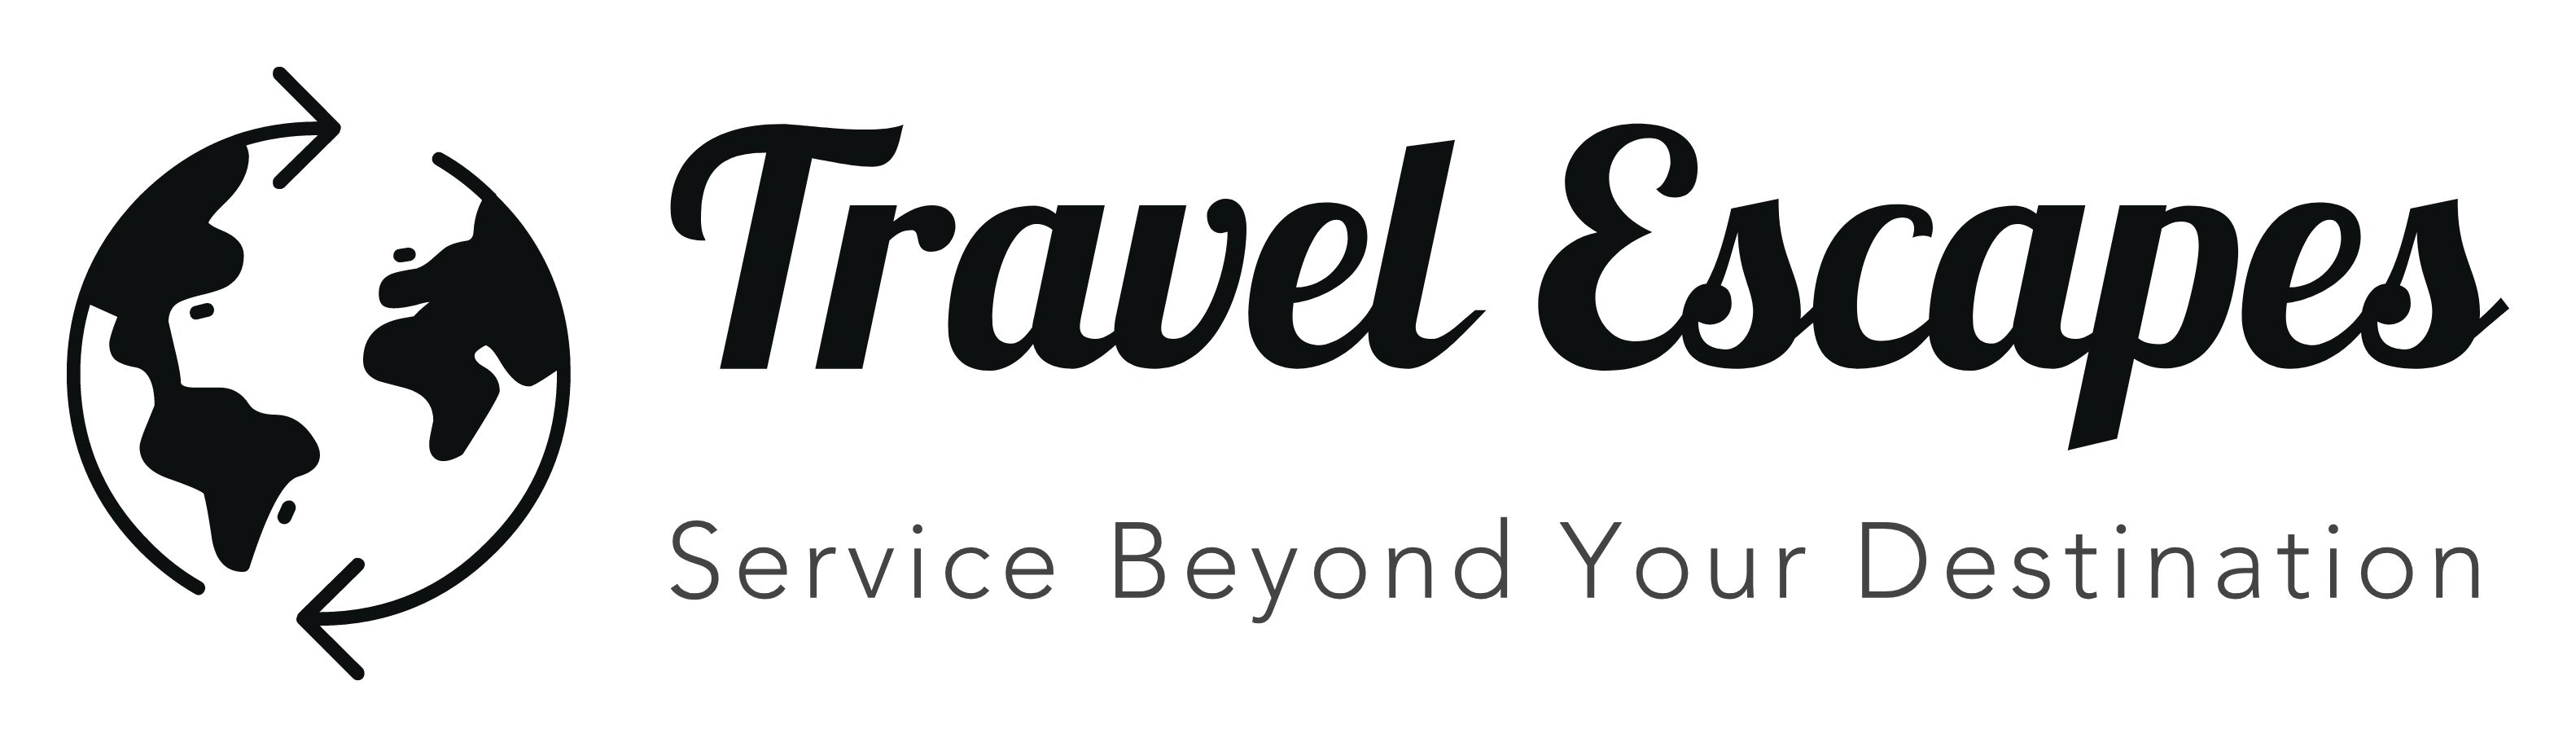 Travel Escapes Vacations Ltd